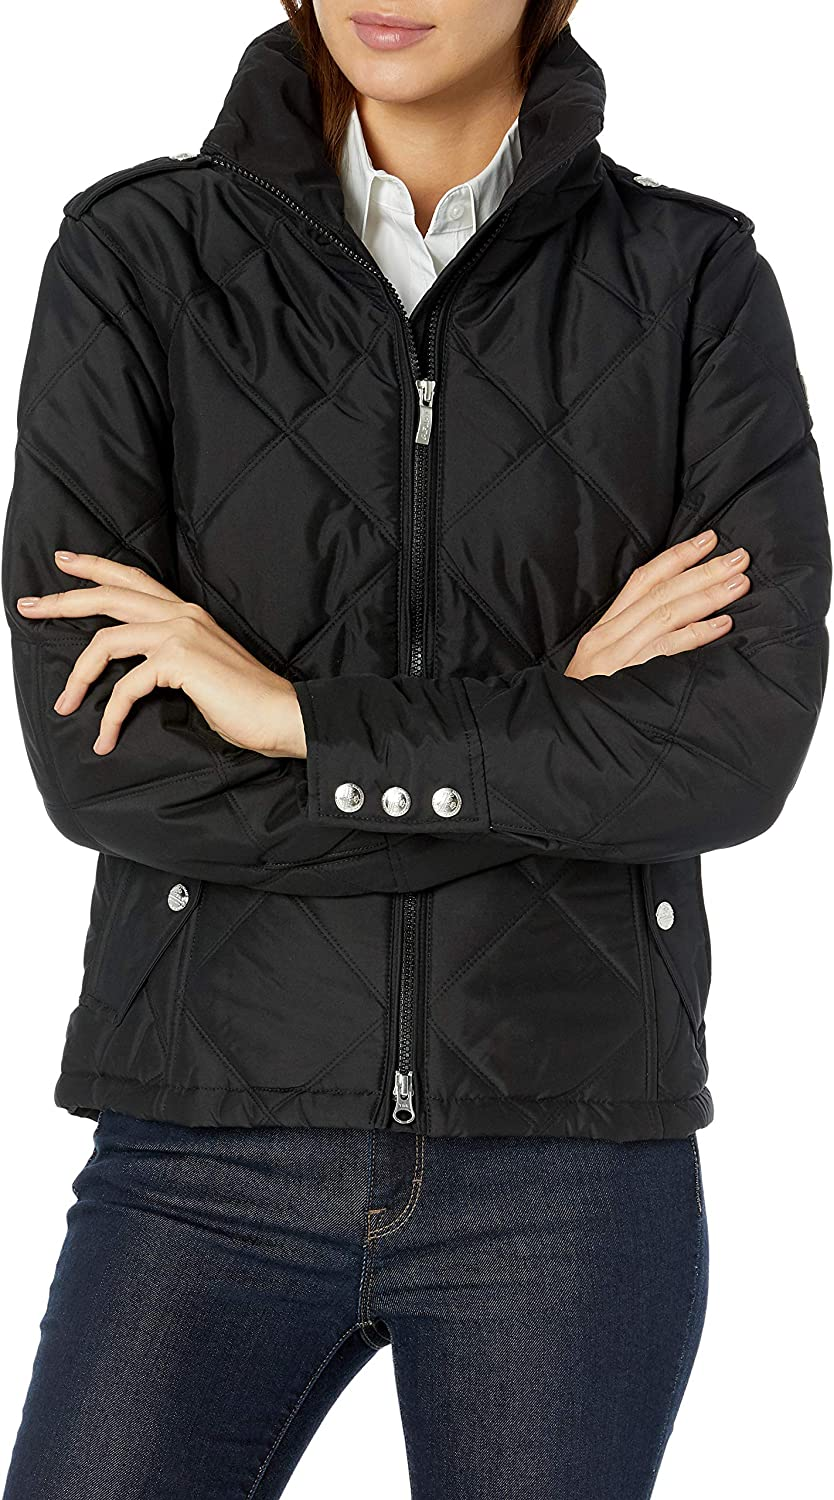 New sales Ariat Women's Terrace Indianapolis Mall Jacket